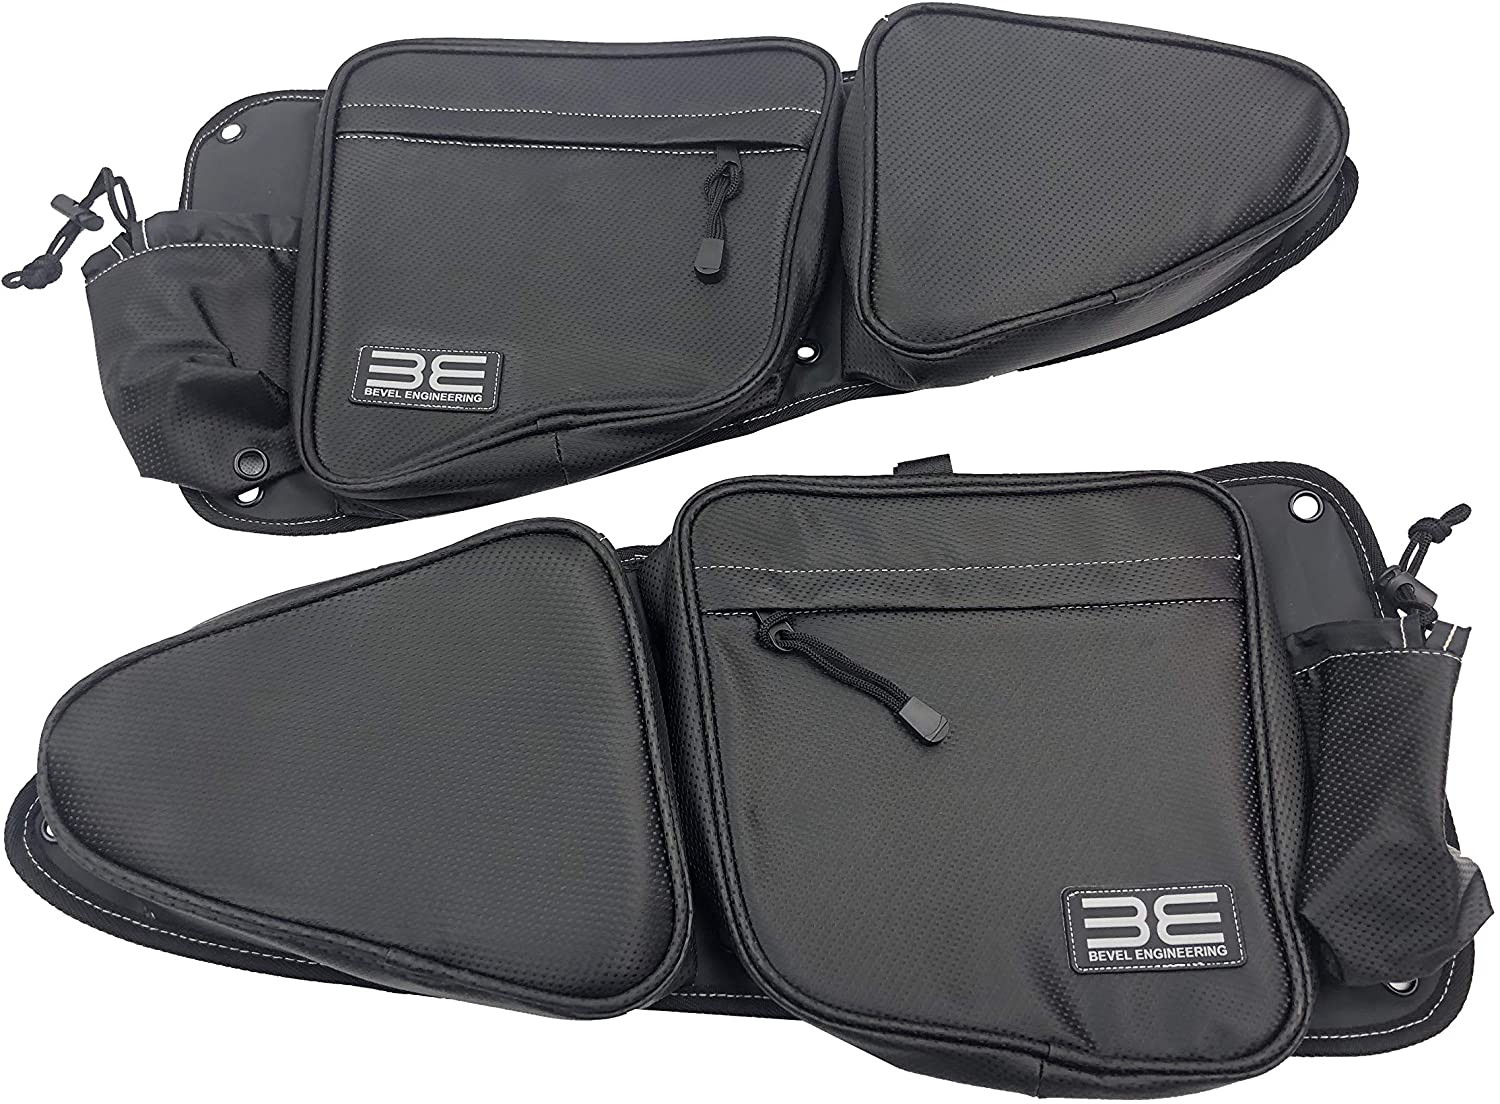 RZR Side Door Bags for Polaris RZR XP 1000 900XC S 900 Front Passenger And Driver Side Storage Bag with Knee Protection Pad